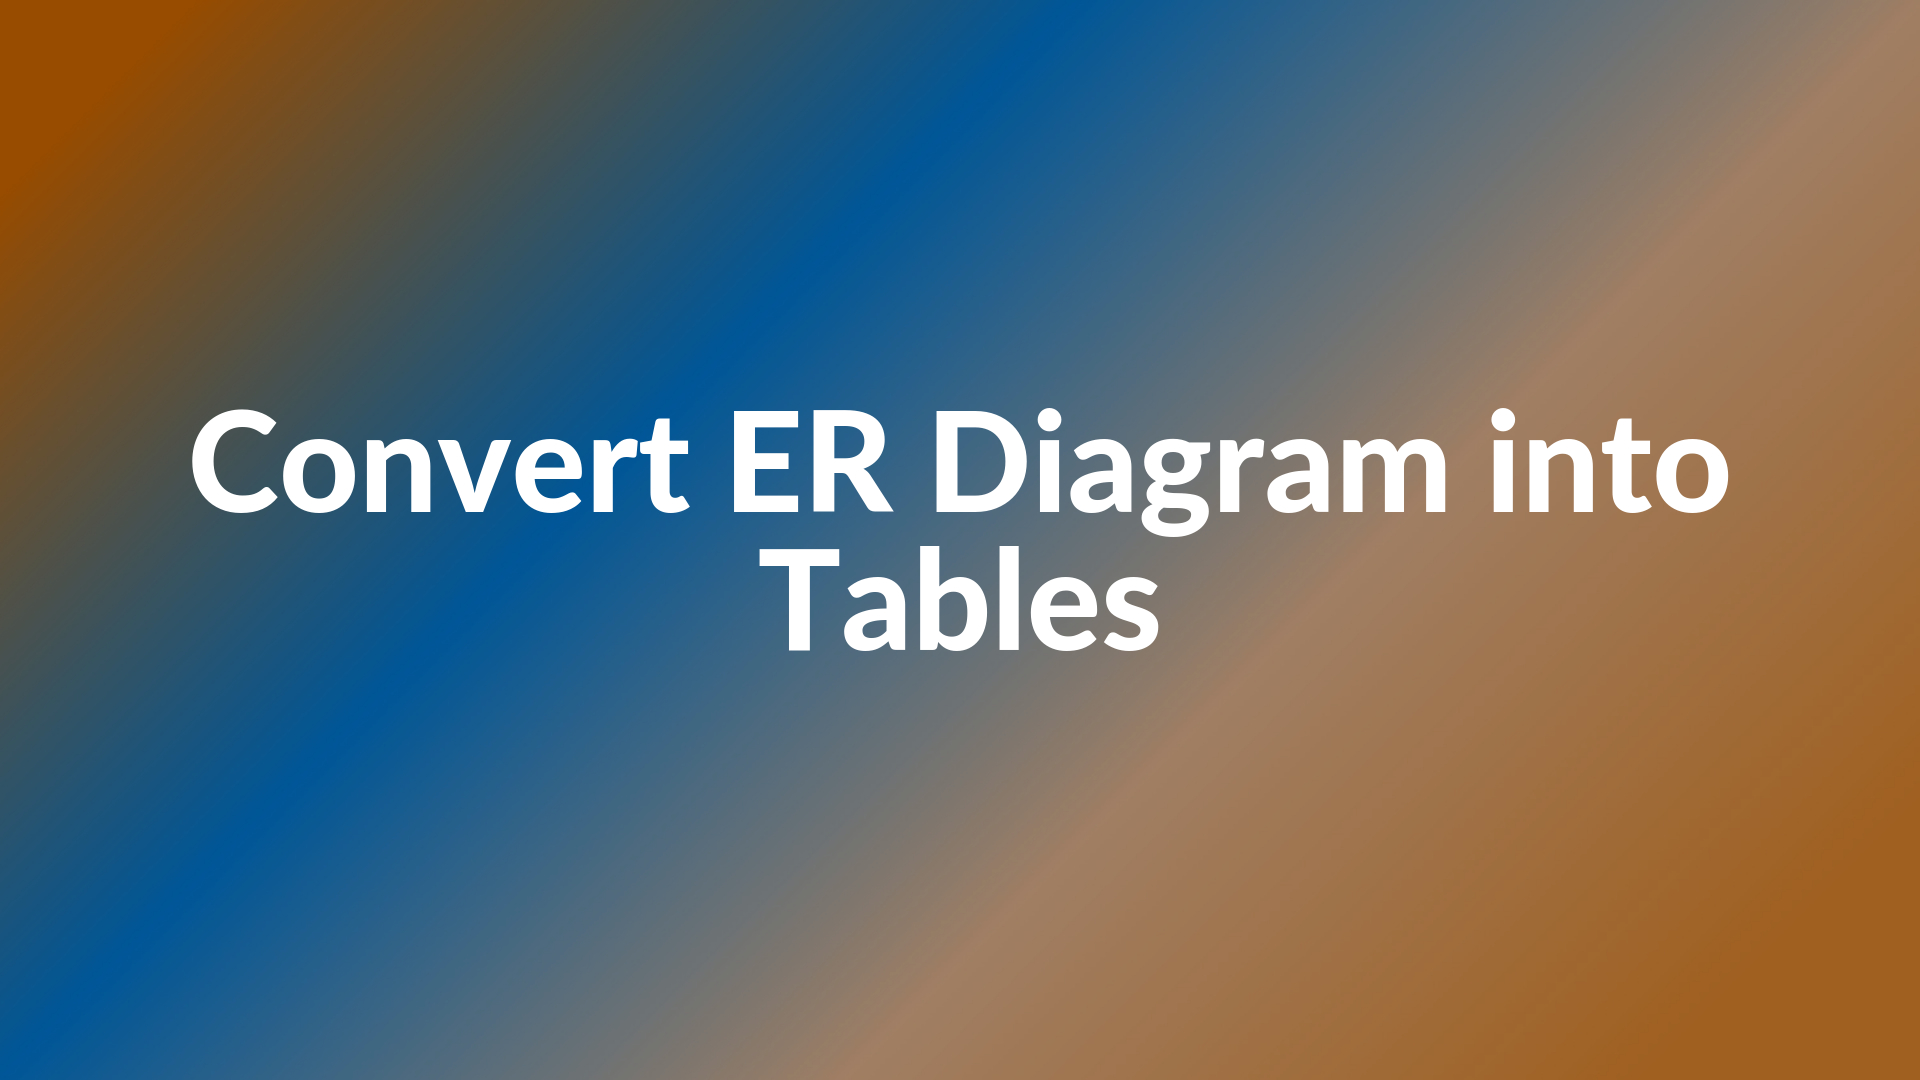 Convert Er Diagram Into Tables - Generalization pertaining to Er Diagram Generalisation Is Represented By